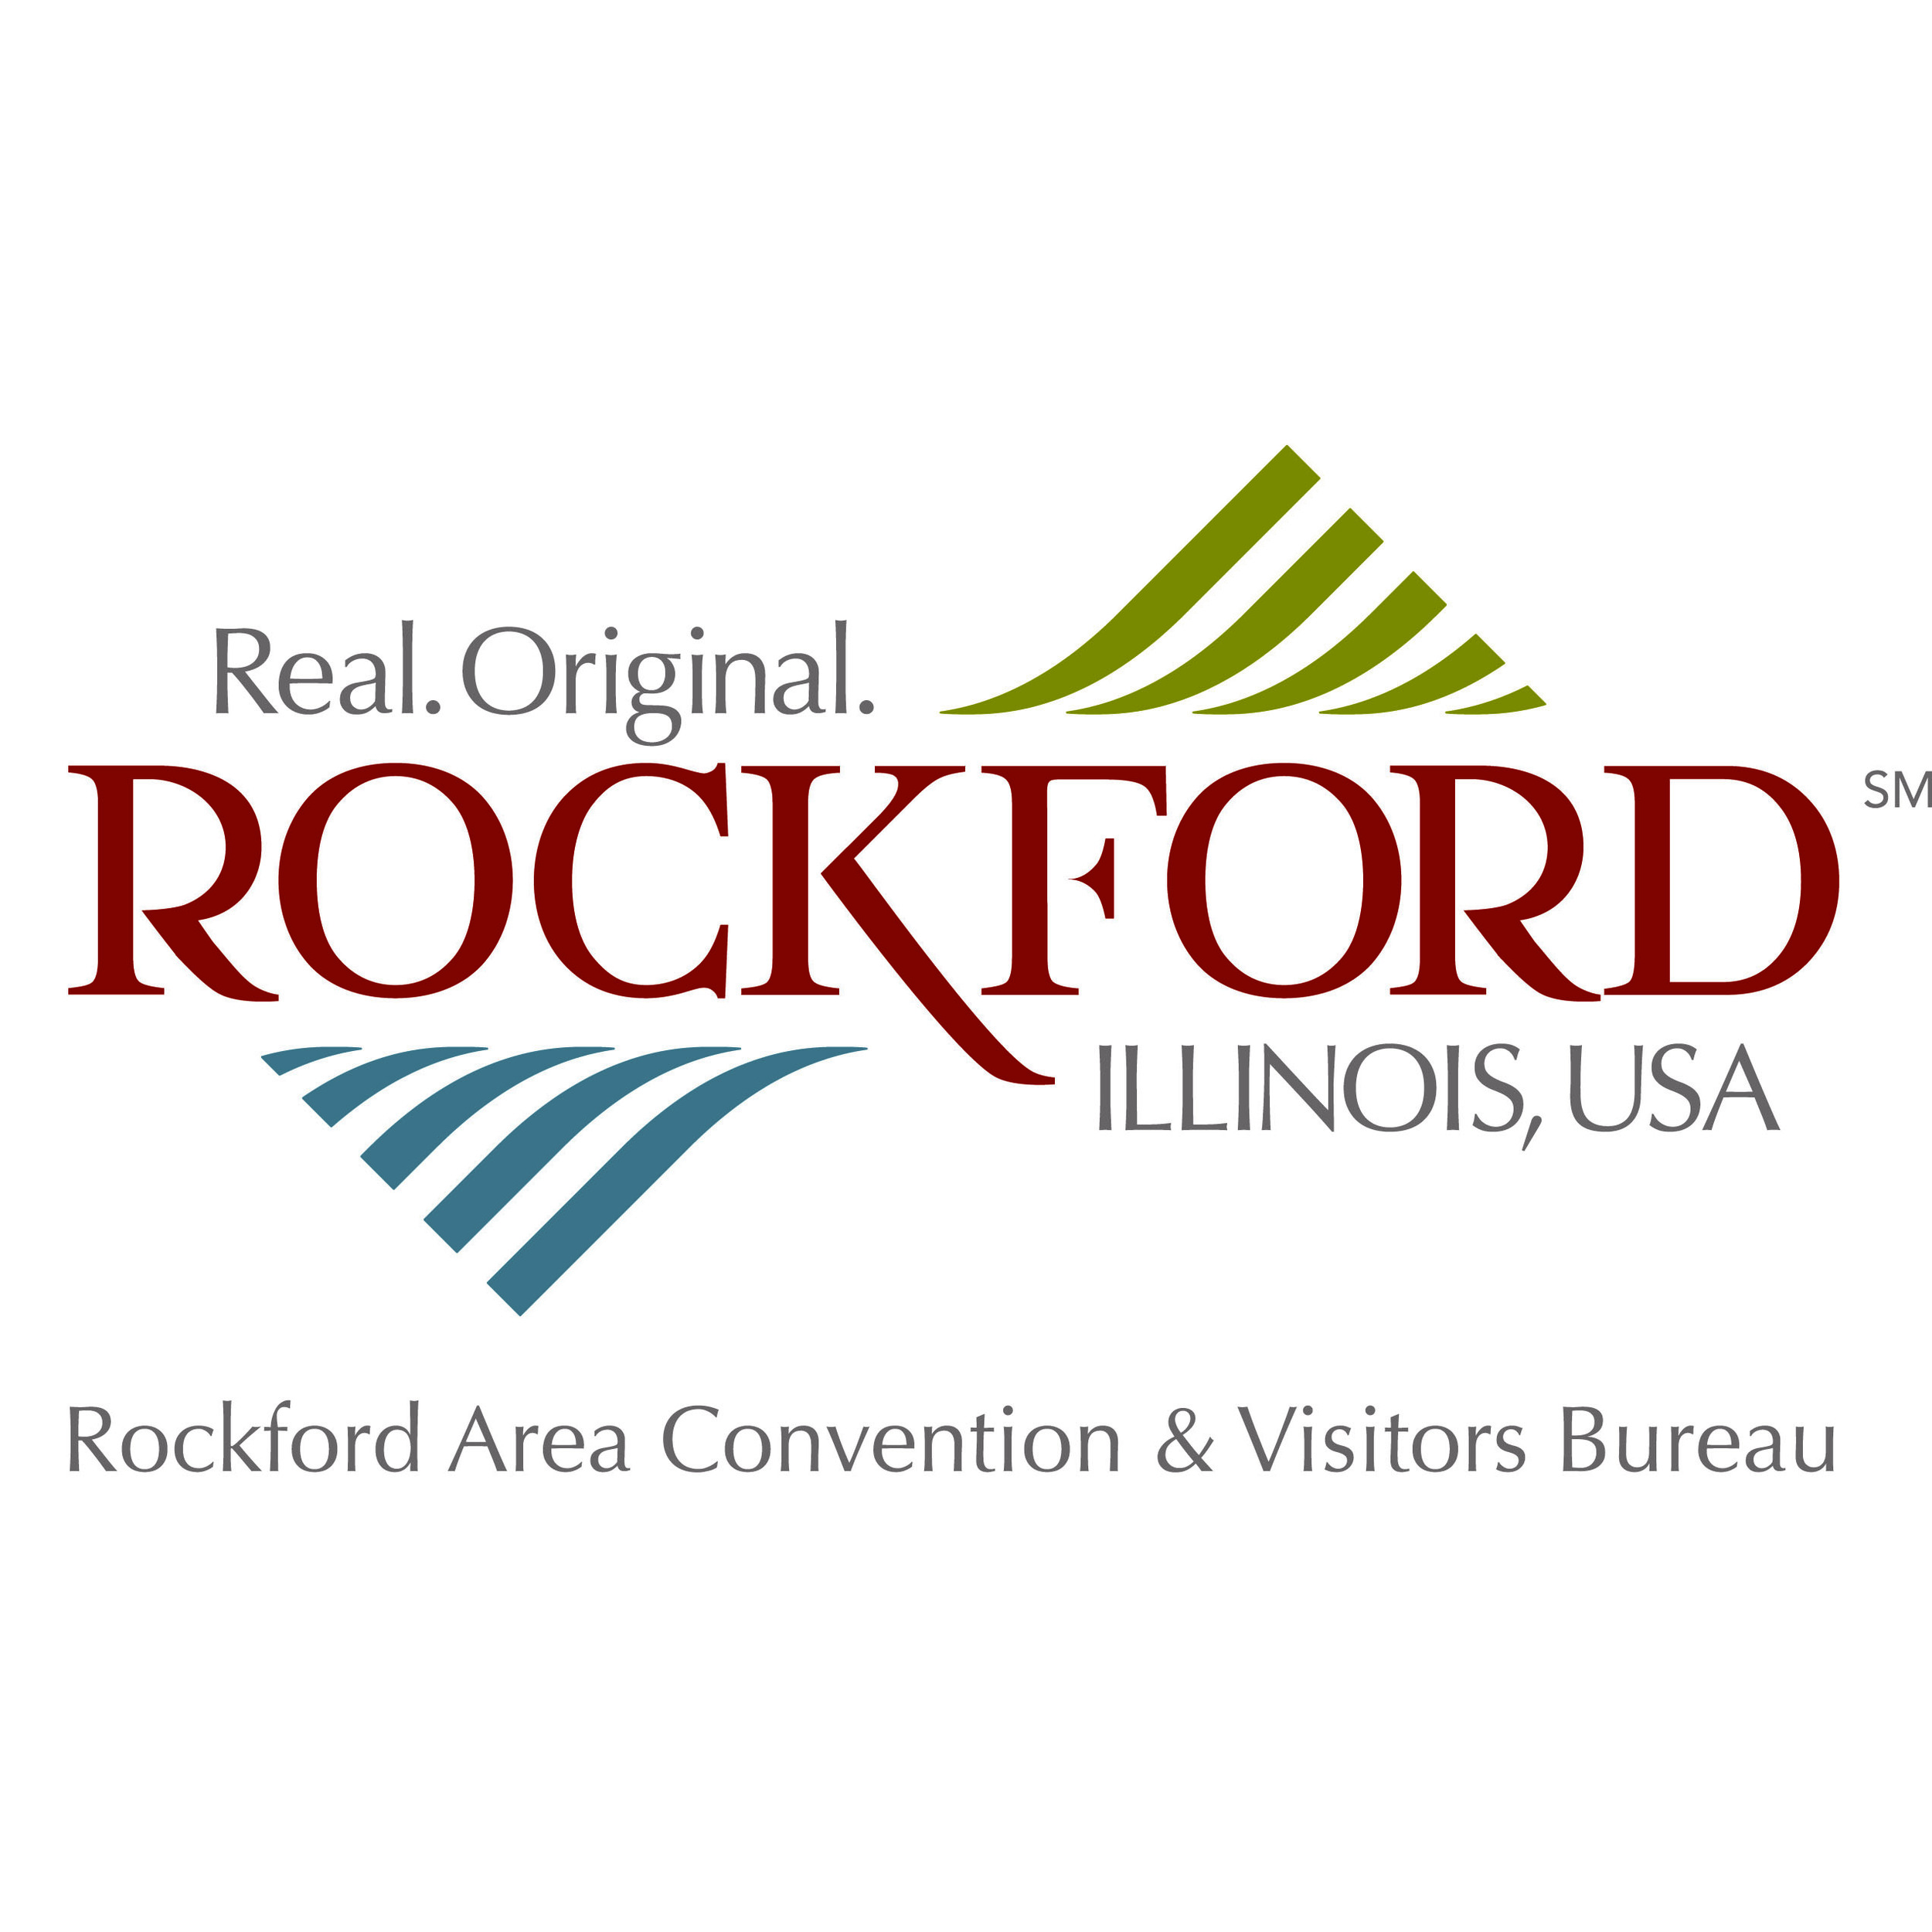 CVB_Real_Original_Rockford1x1.jpg